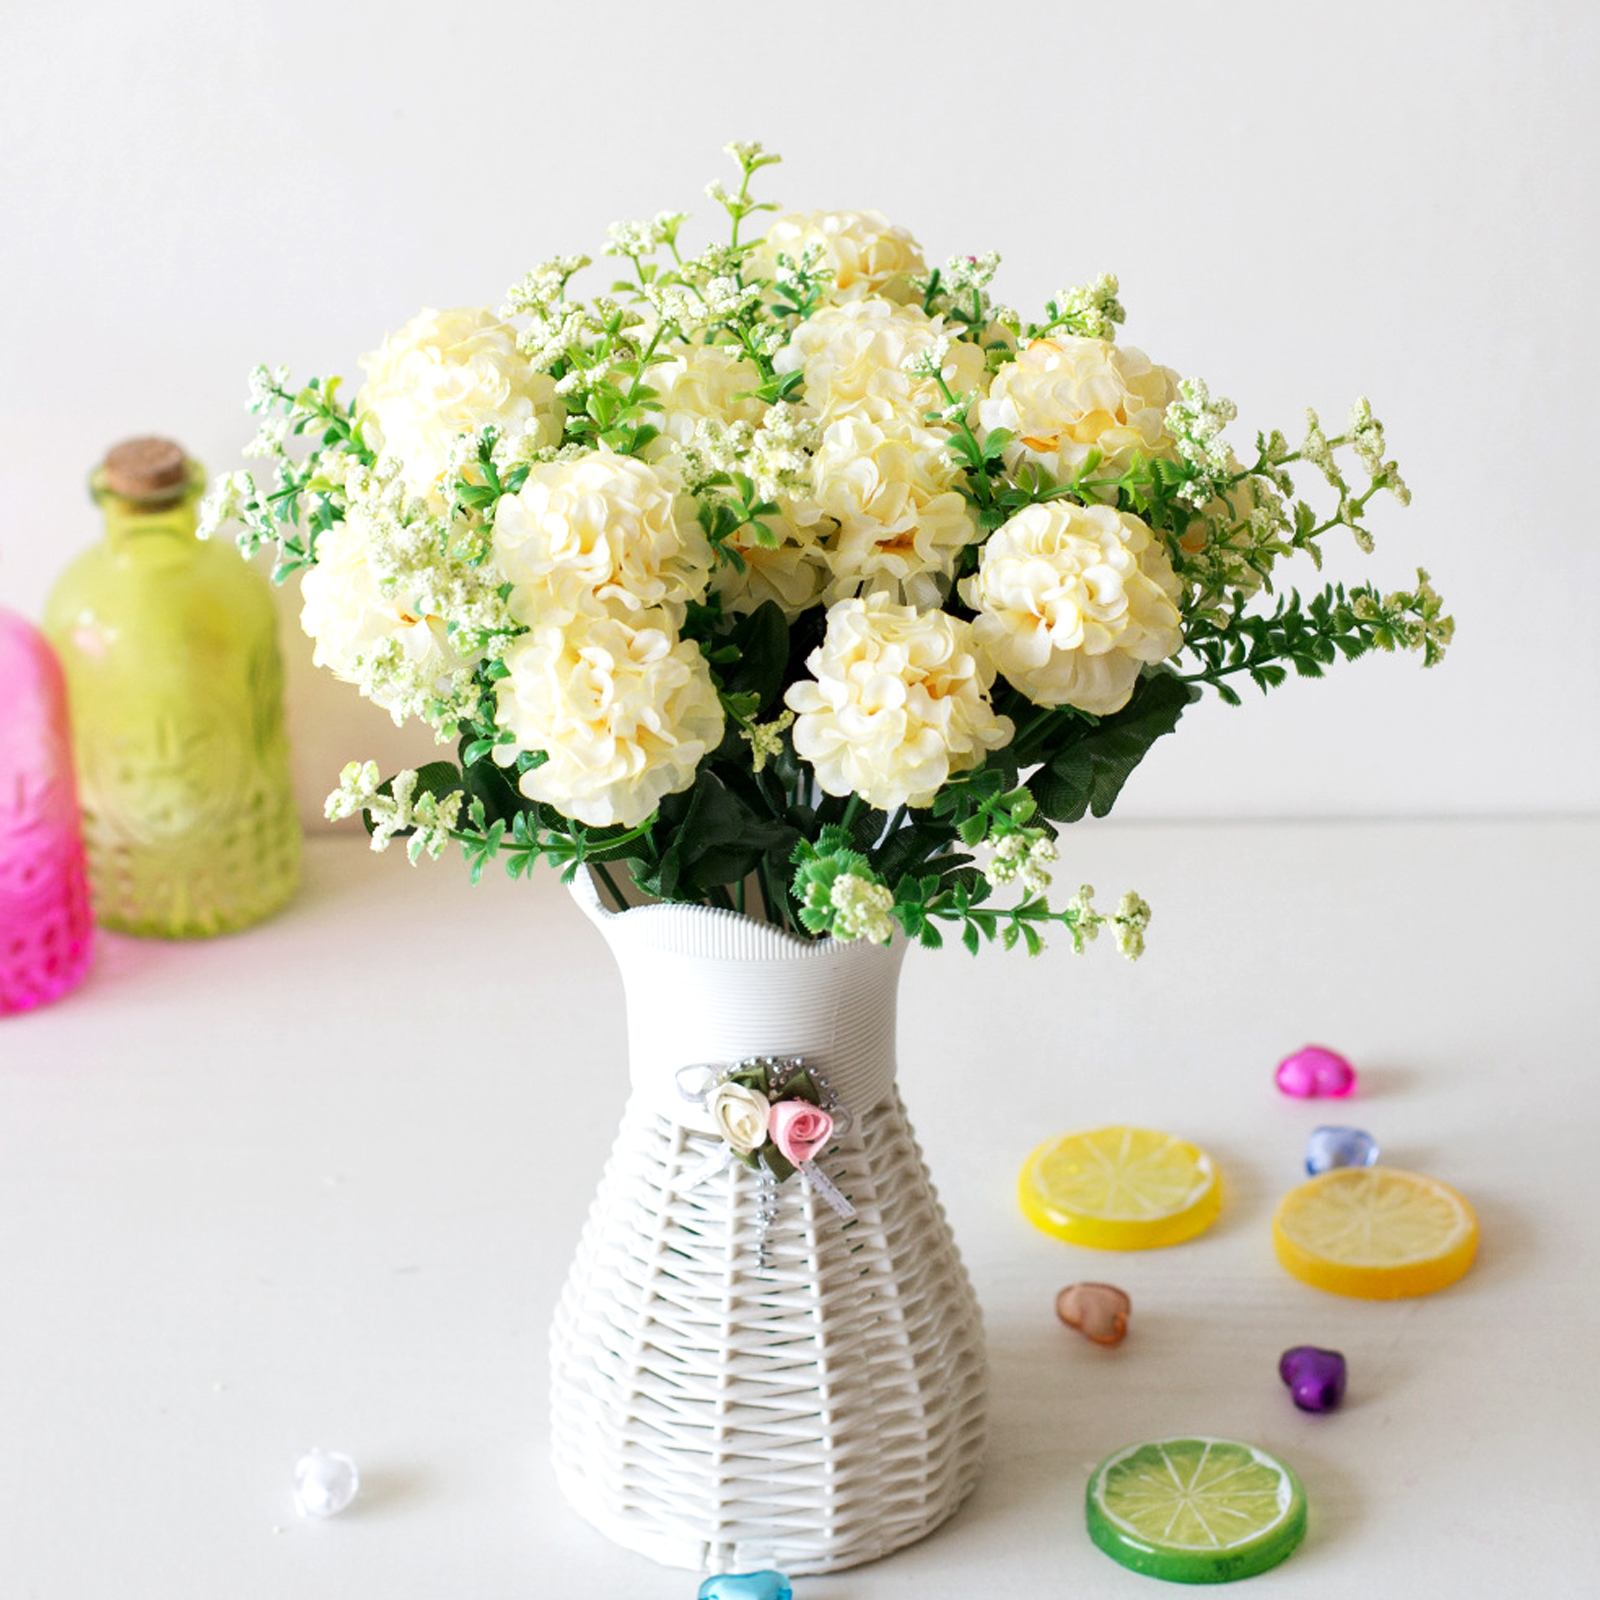 Us 1 56 30 Off 1pcs 29cm Simulation Ball Chrysanthemum Small Bunch Diy Wedding Bridal Bouquet Home Party Decoration Fake Flower Birthday Gift In